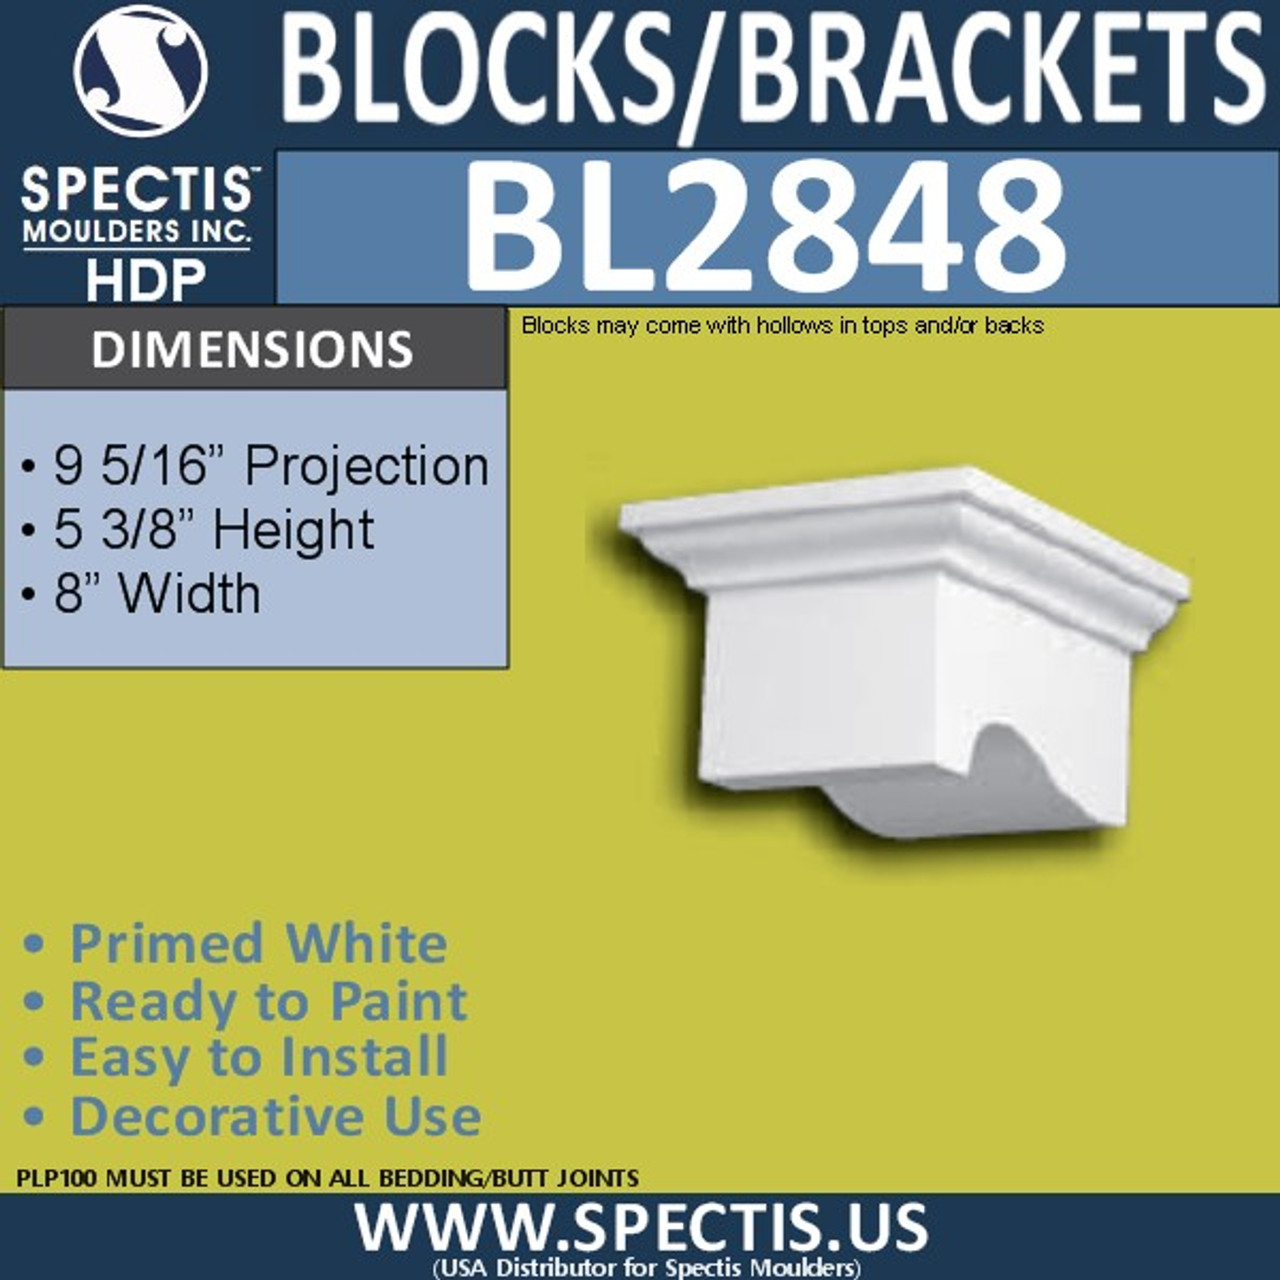 "BL2848 Eave Block or Bracket 8""W x 5.3""H x 9.5"" P"